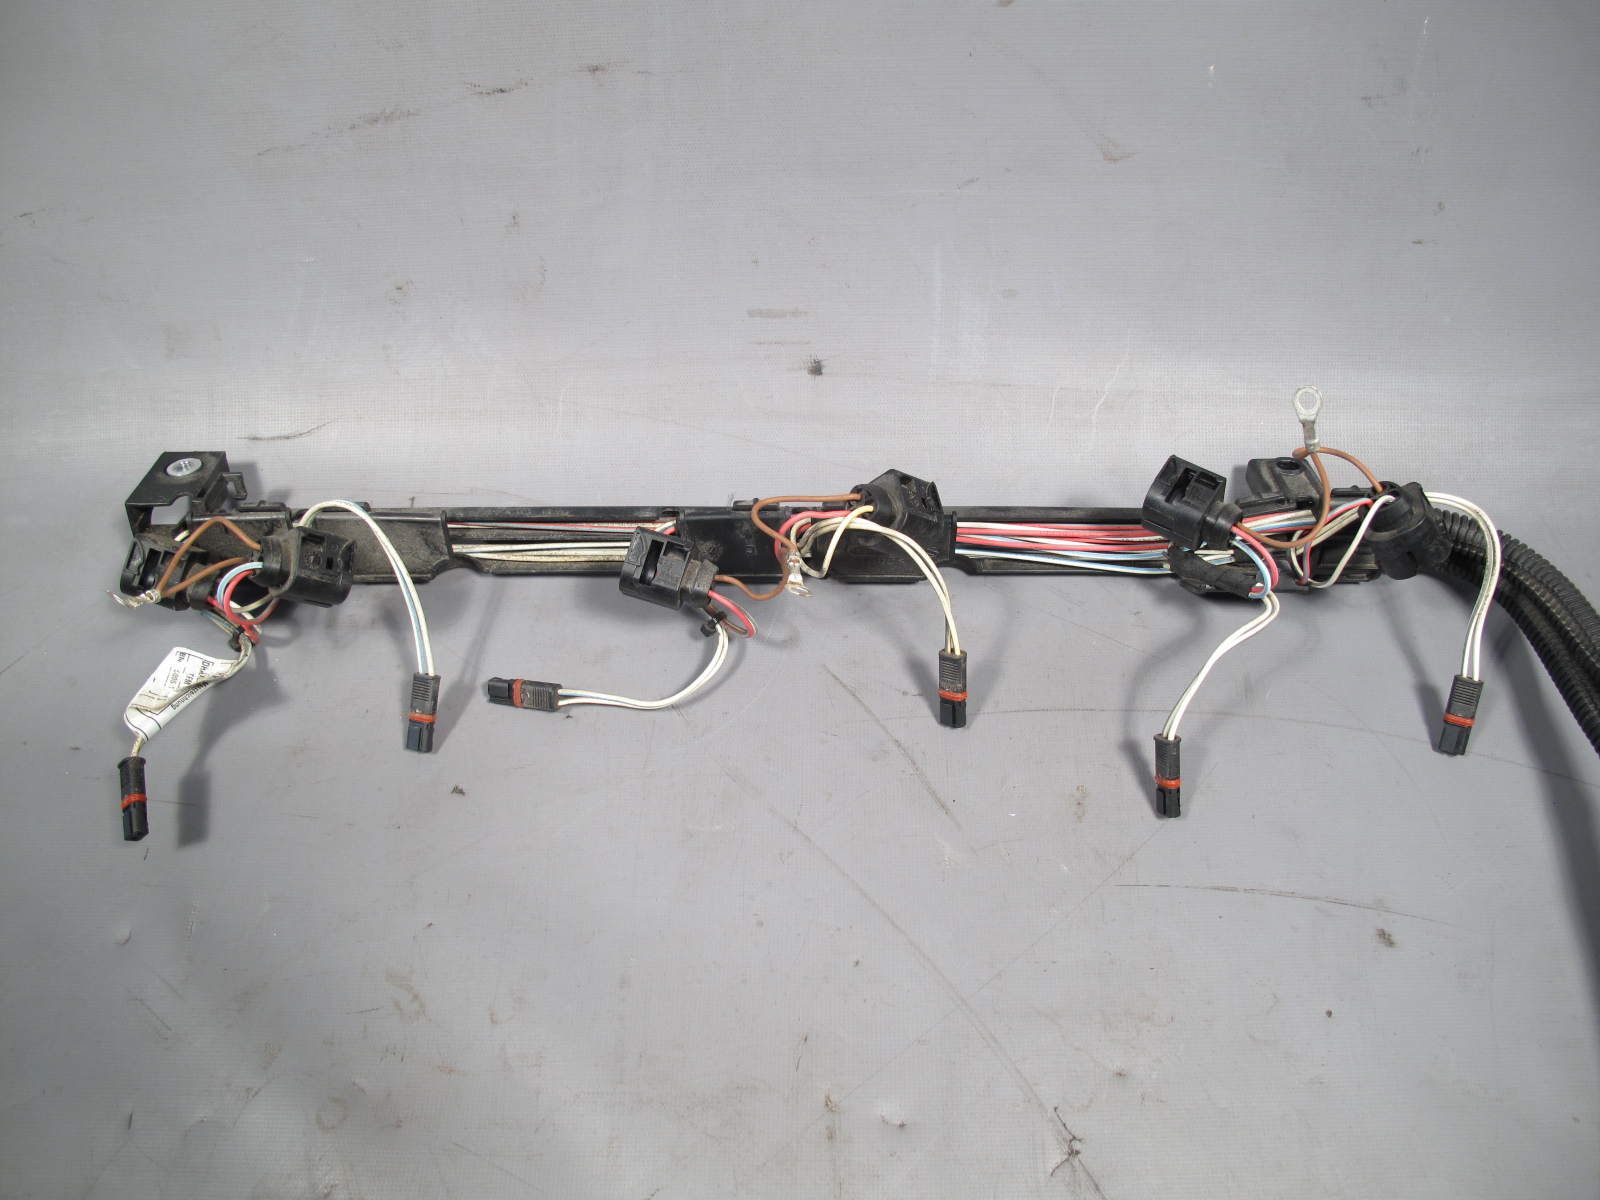 BMW 20112013 N55 6Cyl Turbo Ignition Coil Injector Wiring – Ignition Module Wire Harness